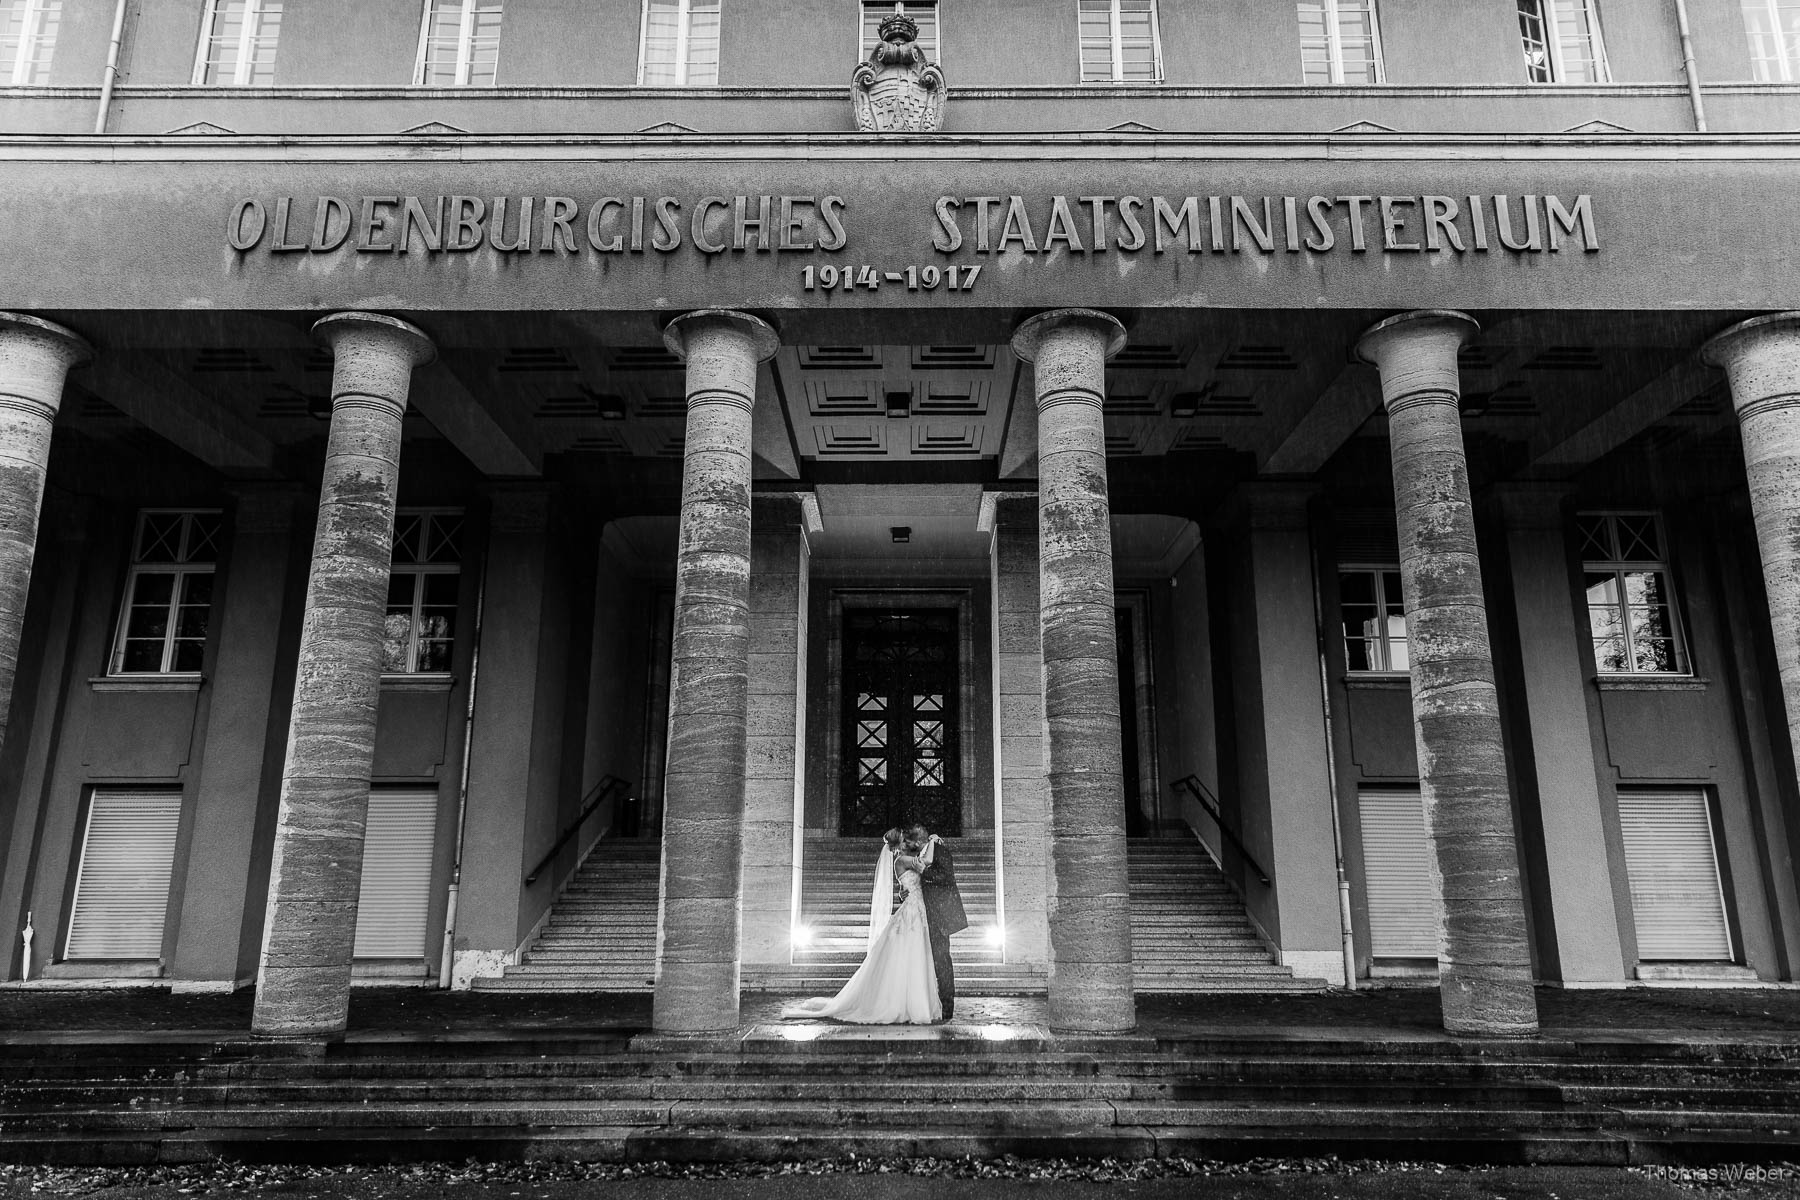 After-Wedding-Shooting in Oldenburg, Fotograf Thomas Weber aus Oldenburg